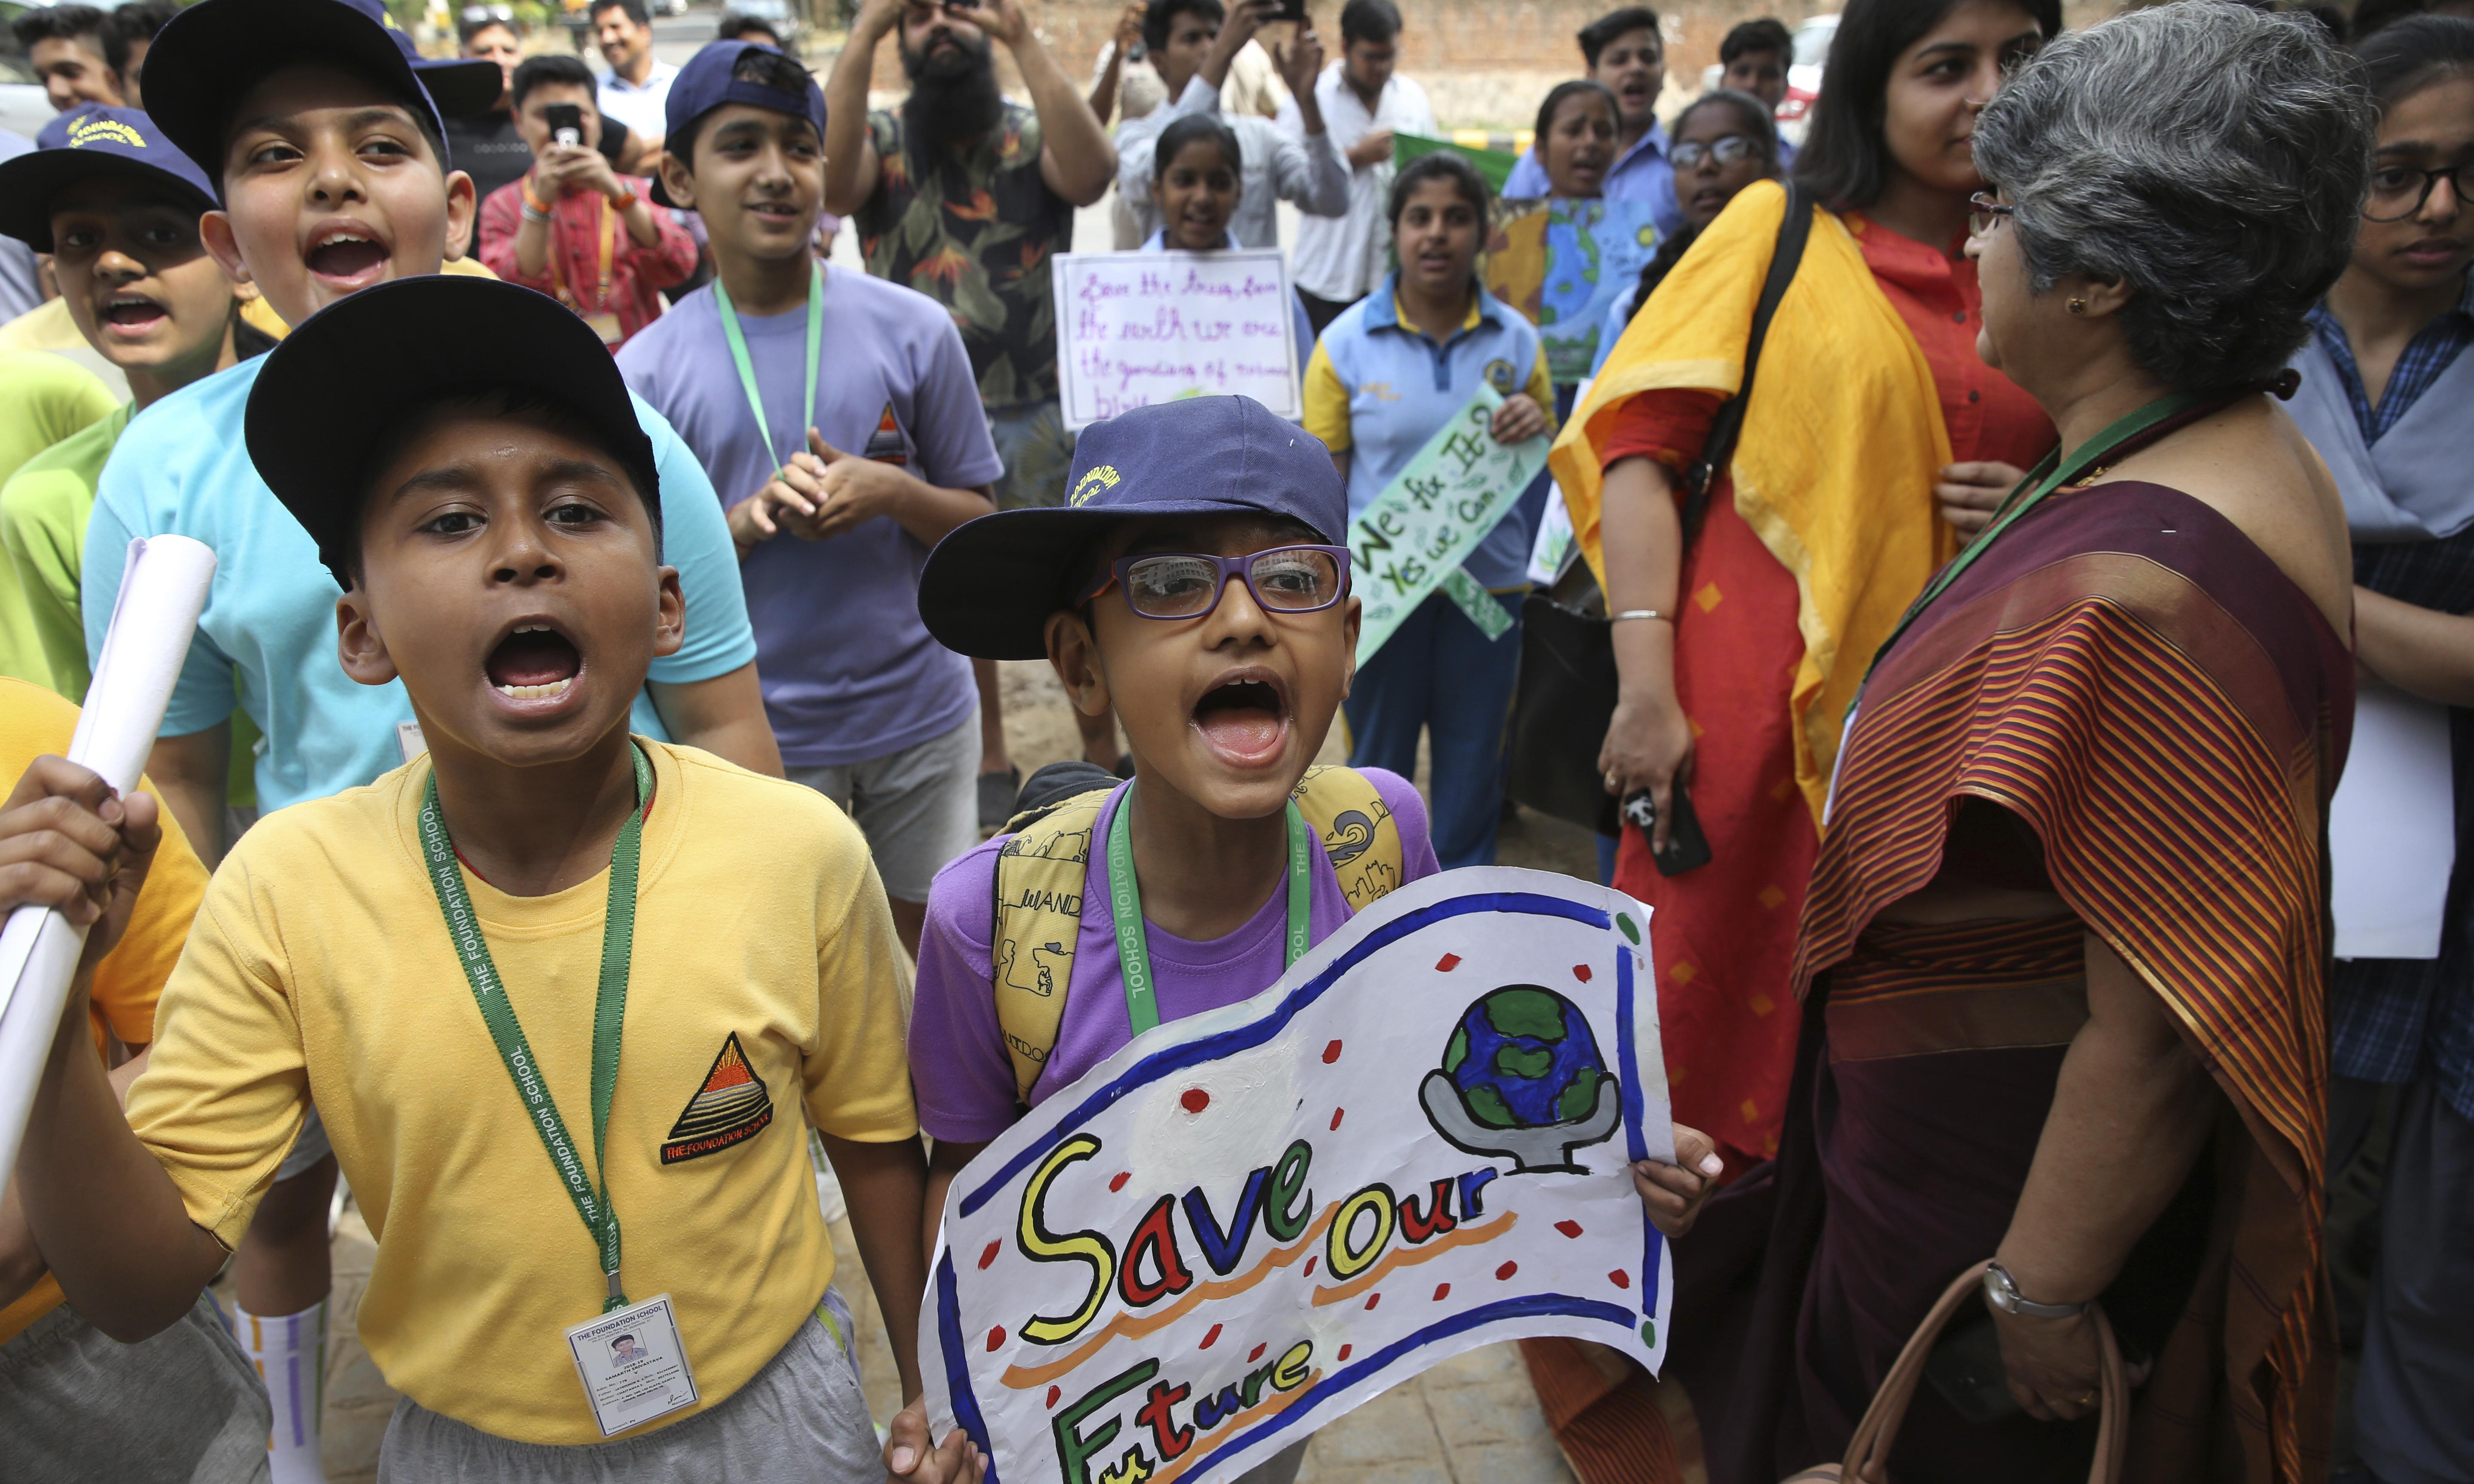 Global youth movements: tell us about your grassroots campaigns